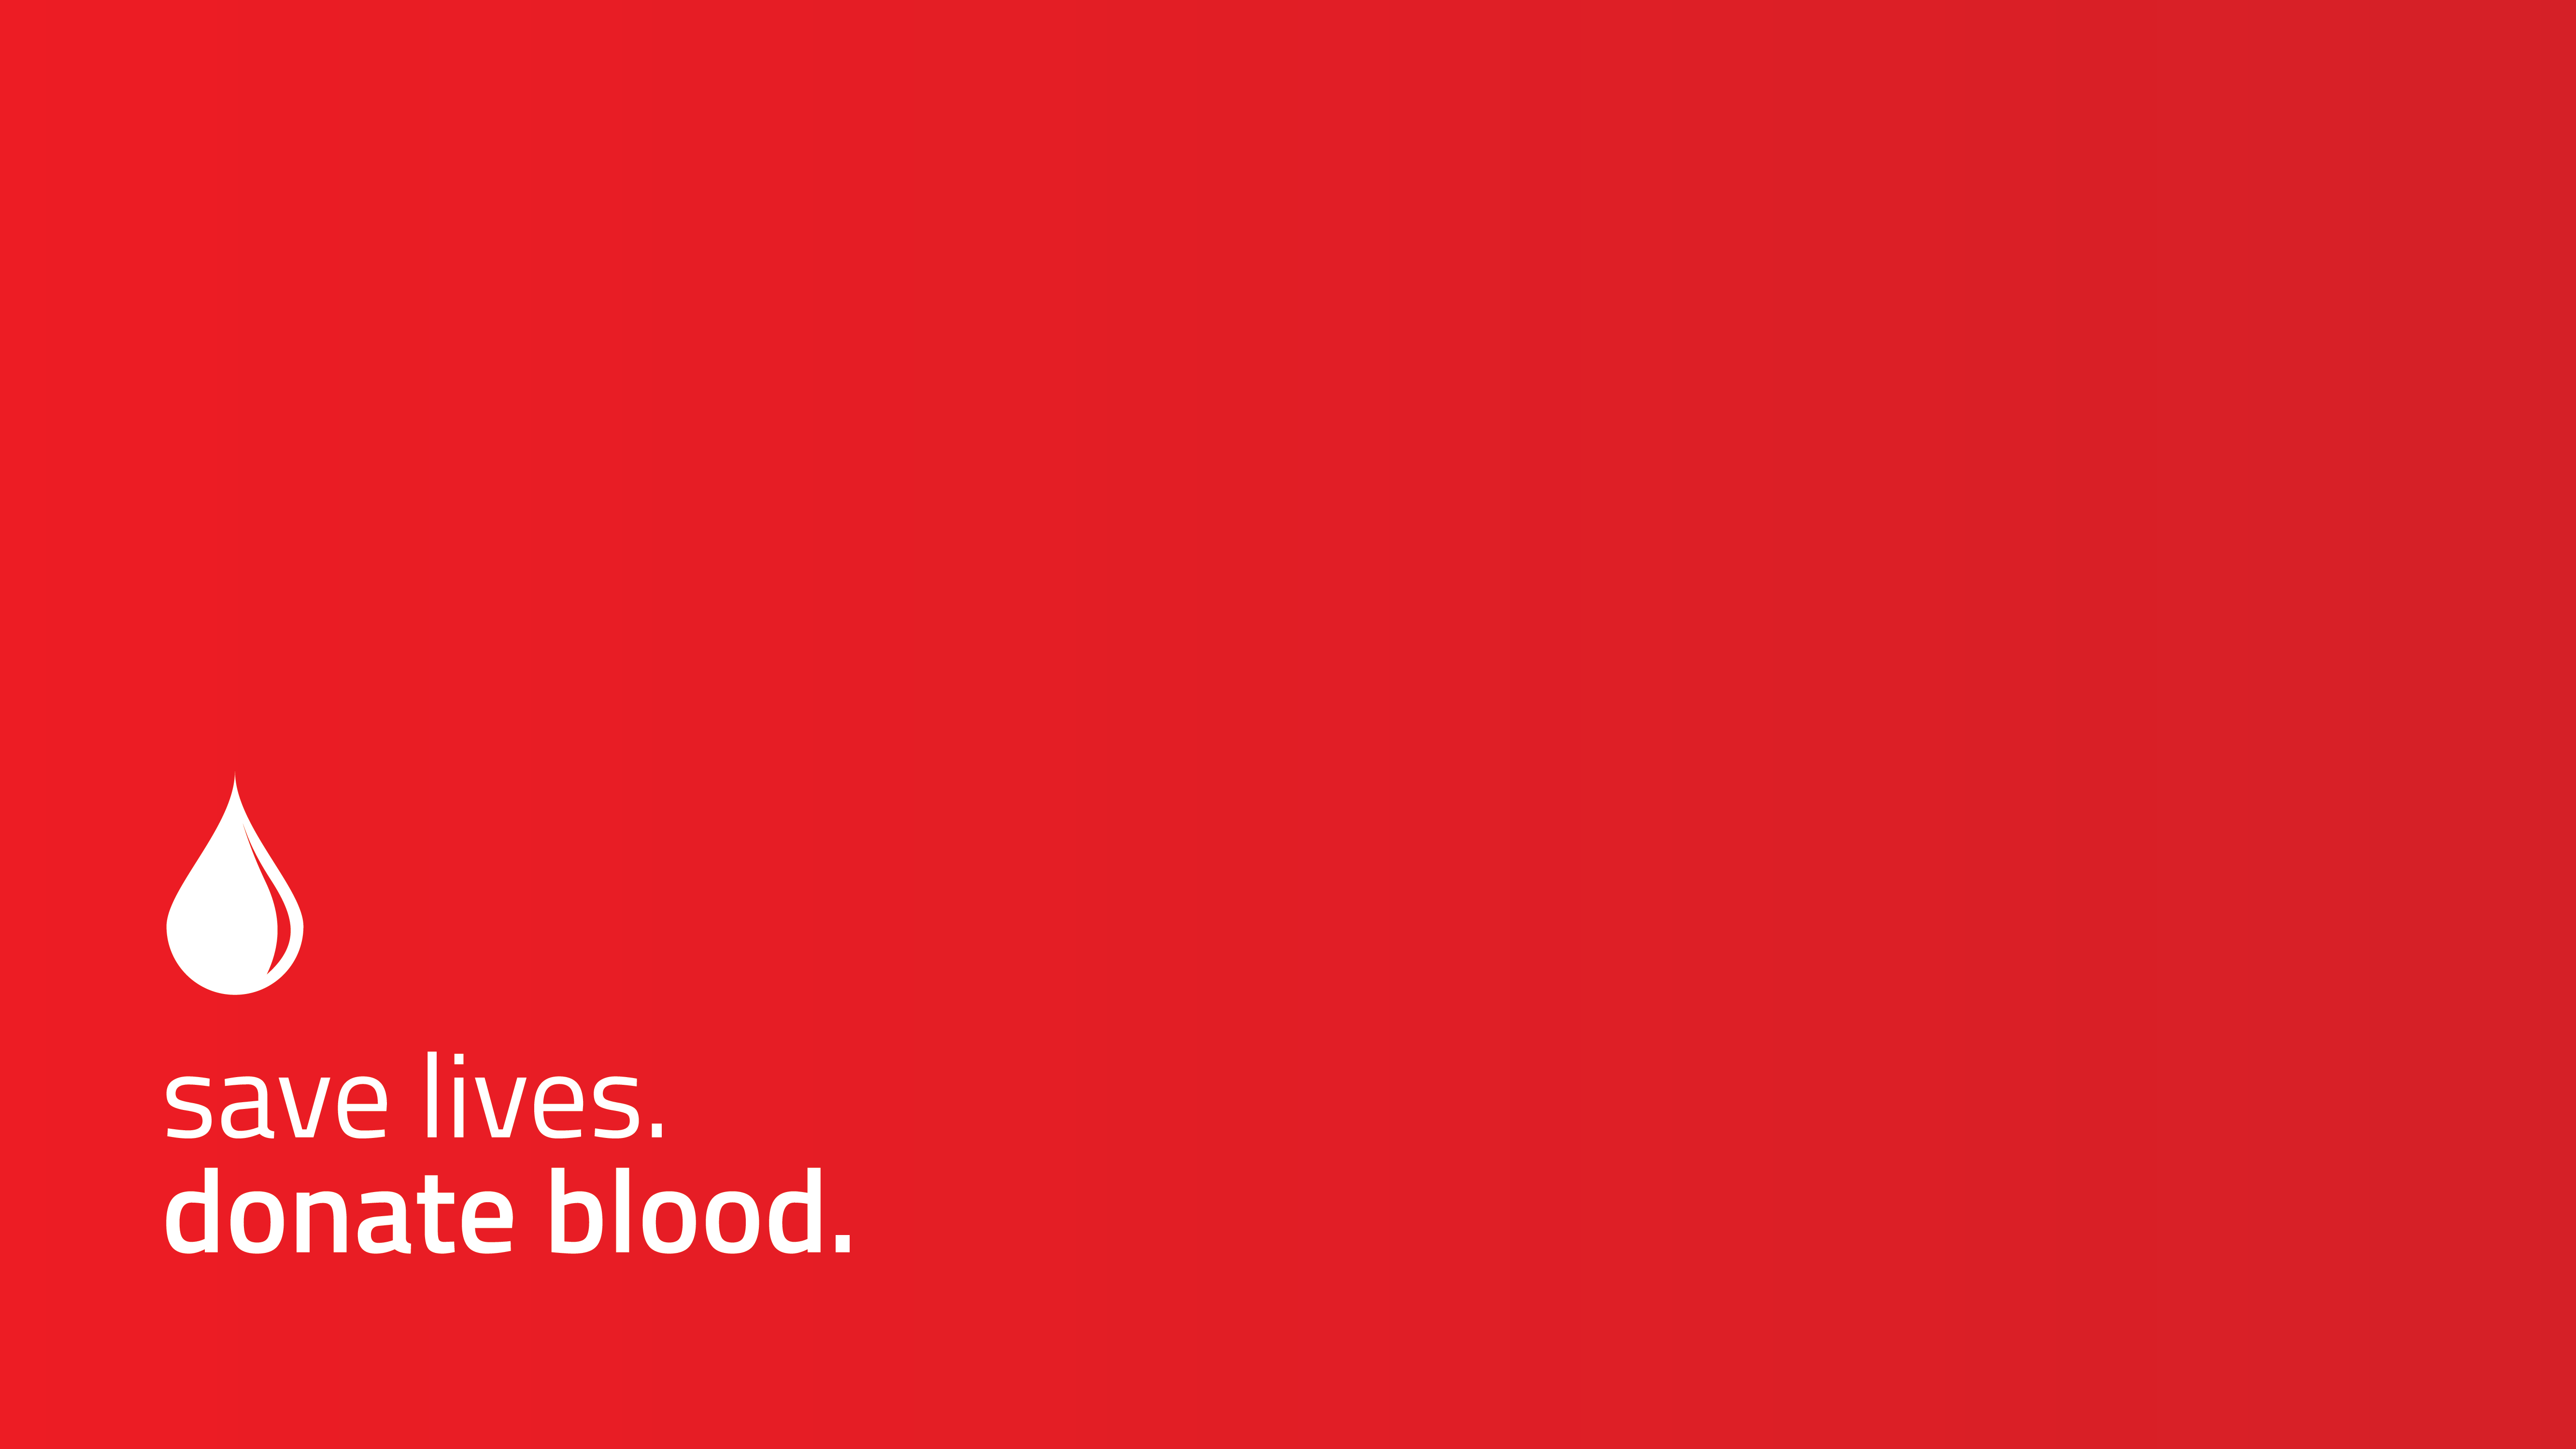 Blood Donation Wallpaper 52 Pictures 5333x3000